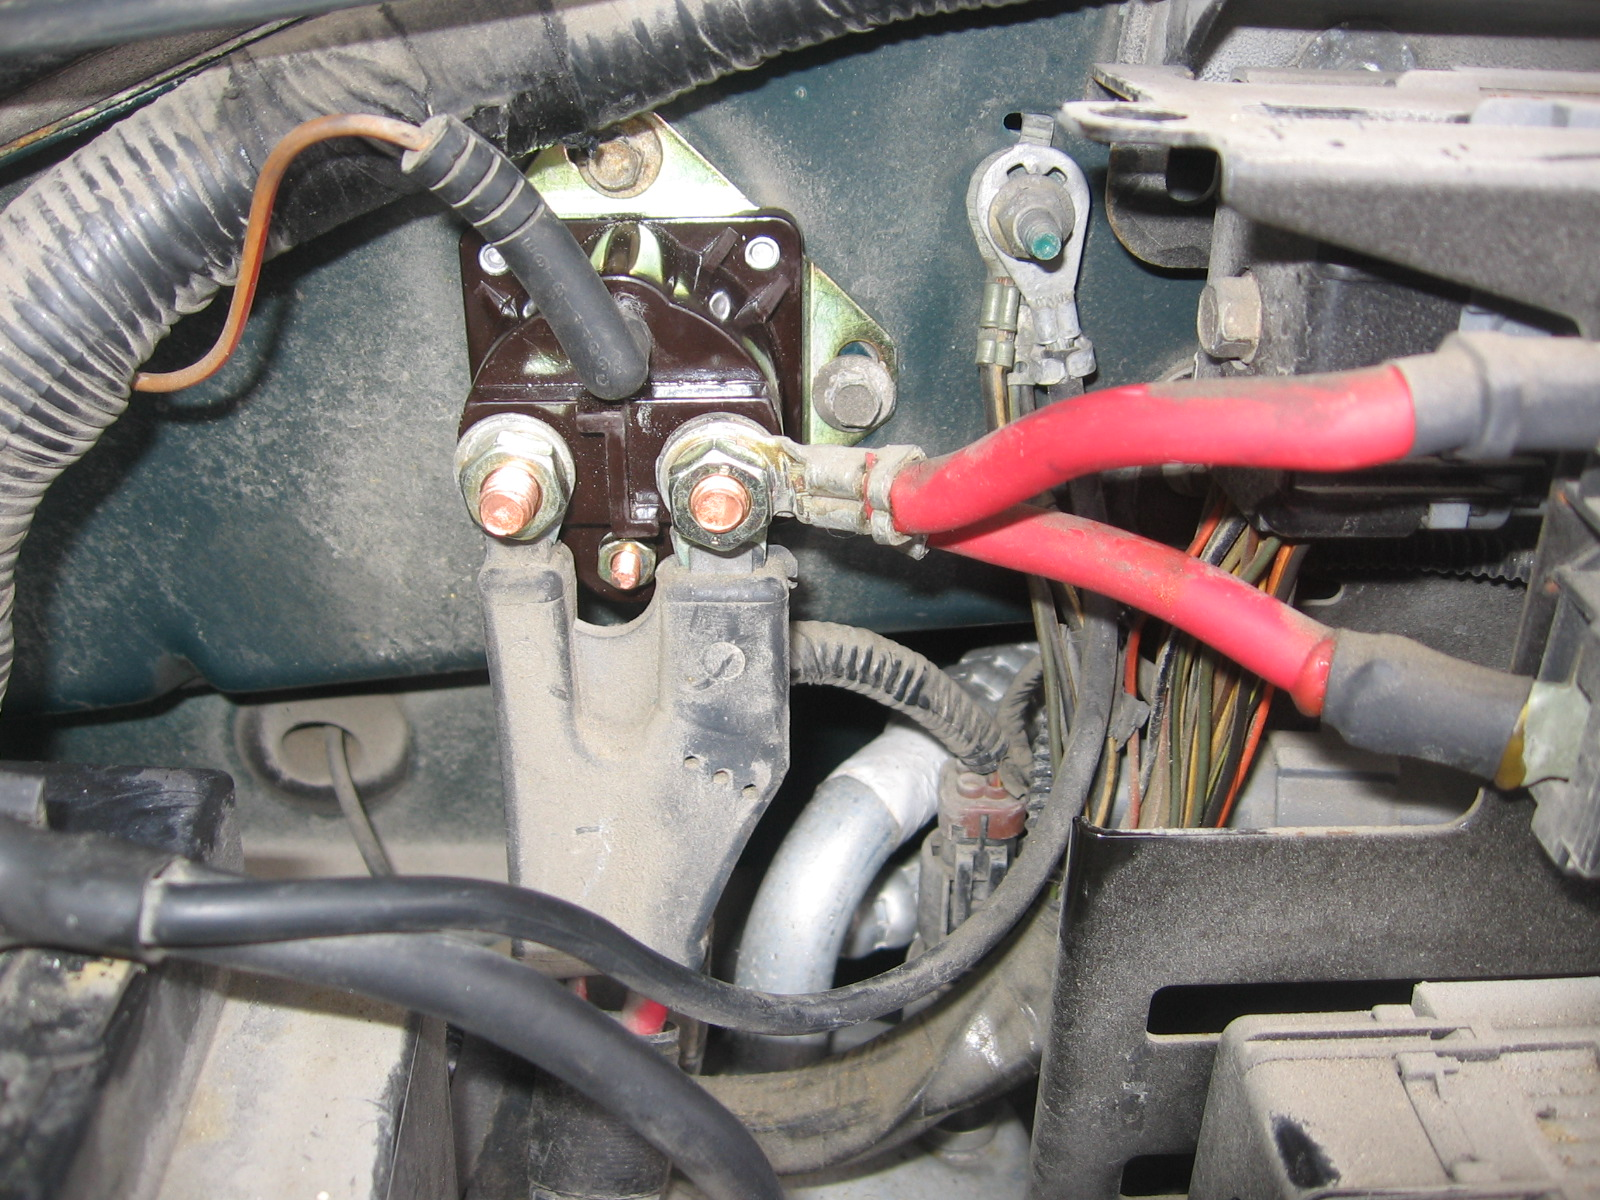 1987 Ford F 150 Motor Starter Wiring Diagram - Great Installation Of  E Trailer Wiring Diagram on sierra wiring diagram, f150 wiring diagram, ranger wiring diagram, fairmont wiring diagram, e300 wiring diagram, f550 wiring diagram, f100 wiring diagram, f250 super duty wiring diagram, bronco ii wiring diagram, f450 wiring diagram, explorer wiring diagram, model wiring diagram, mustang wiring diagram, fusion wiring diagram, aspire wiring diagram, van wiring diagram, f650 wiring diagram, c-max wiring diagram, ford wiring diagram, e-250 wiring diagram,